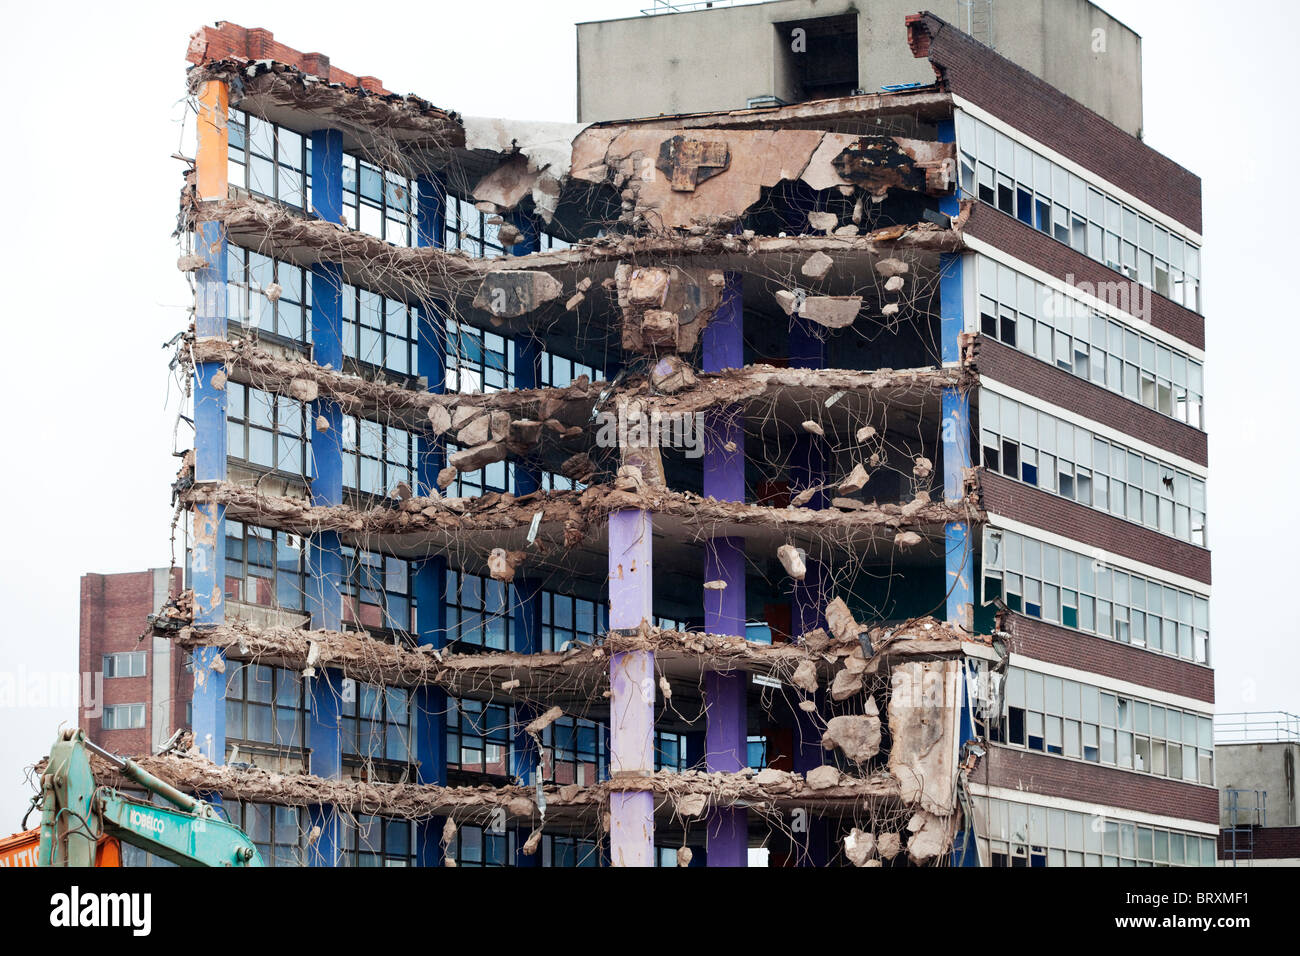 A partially demolished building in Wolverhampton, UK - Stock Image